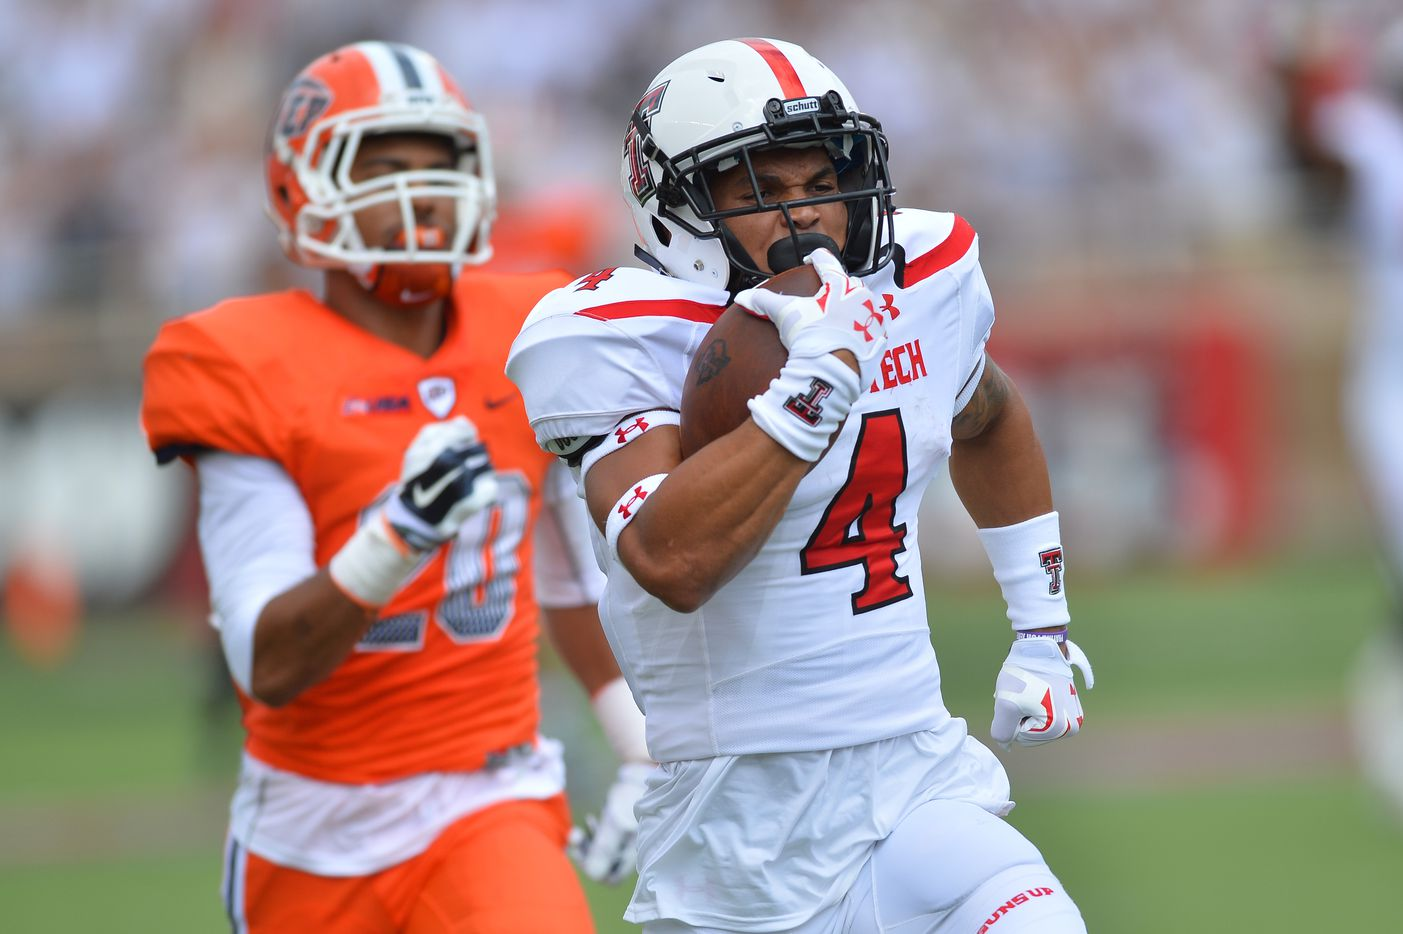 JUSTIN STOCKTON / Junior RB / 5-foot-10, 200 pounds / 2015 stats: Appeared in 13 games, 61 rushing attempts for 367 yards and 5 touchdowns, 22 receptions for 341 yards / Notable: Justin Stockton seems to be the starting running back for the Red Raiders heading into the 2016 season. Stockton was the backup to former back-to-back 1,000-yard rusher DeAndre Washington and has experience in games. However, the question looms if Stockton can carry a heavy workload like Washington was able to do. But with his speed in the open field and ability to rack up yardage after a reception, Stockton can be a force to be reckoned with in the Tech offense.